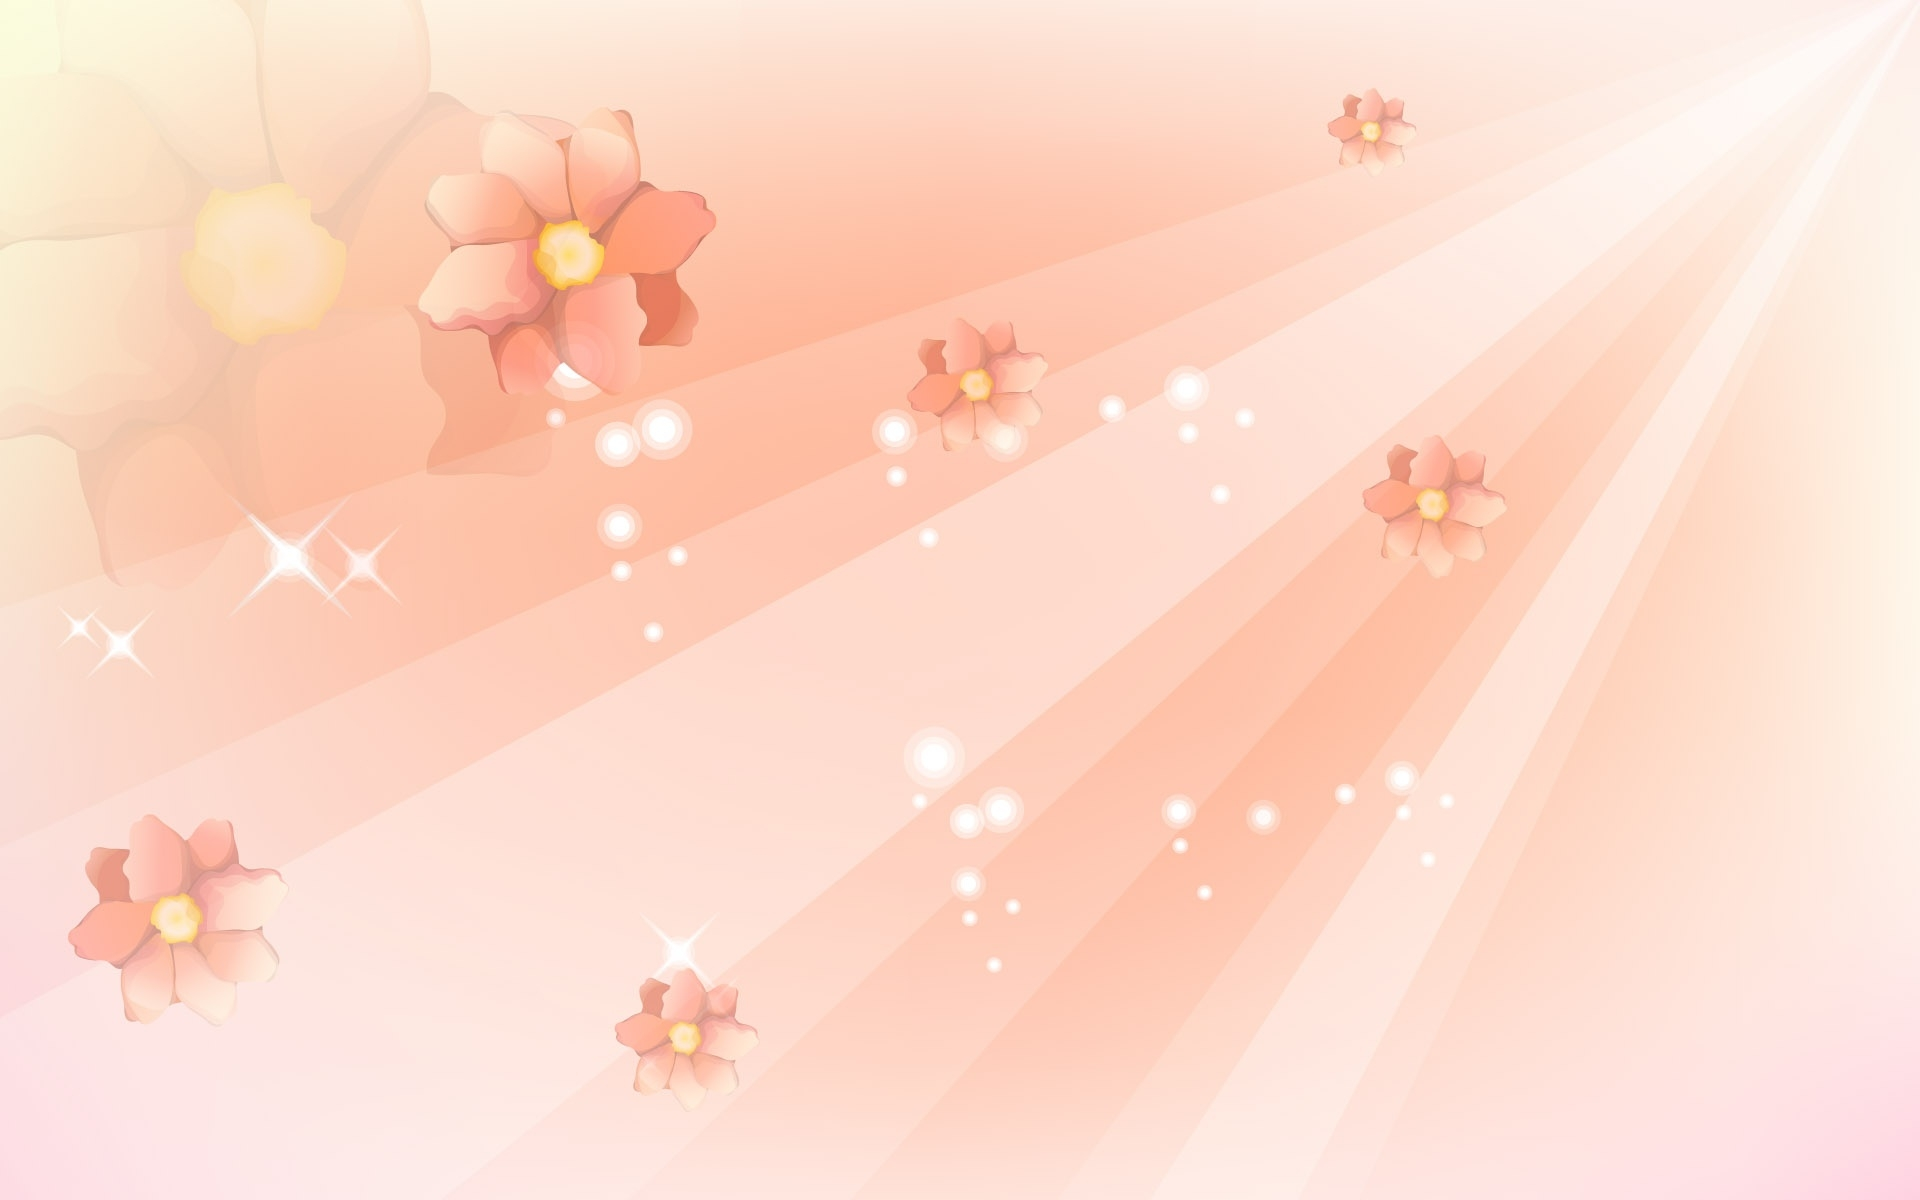 Light Flower Wallpaper: Wallpapers for Gt Light Pink Flower Backgrounds 1920x1200px